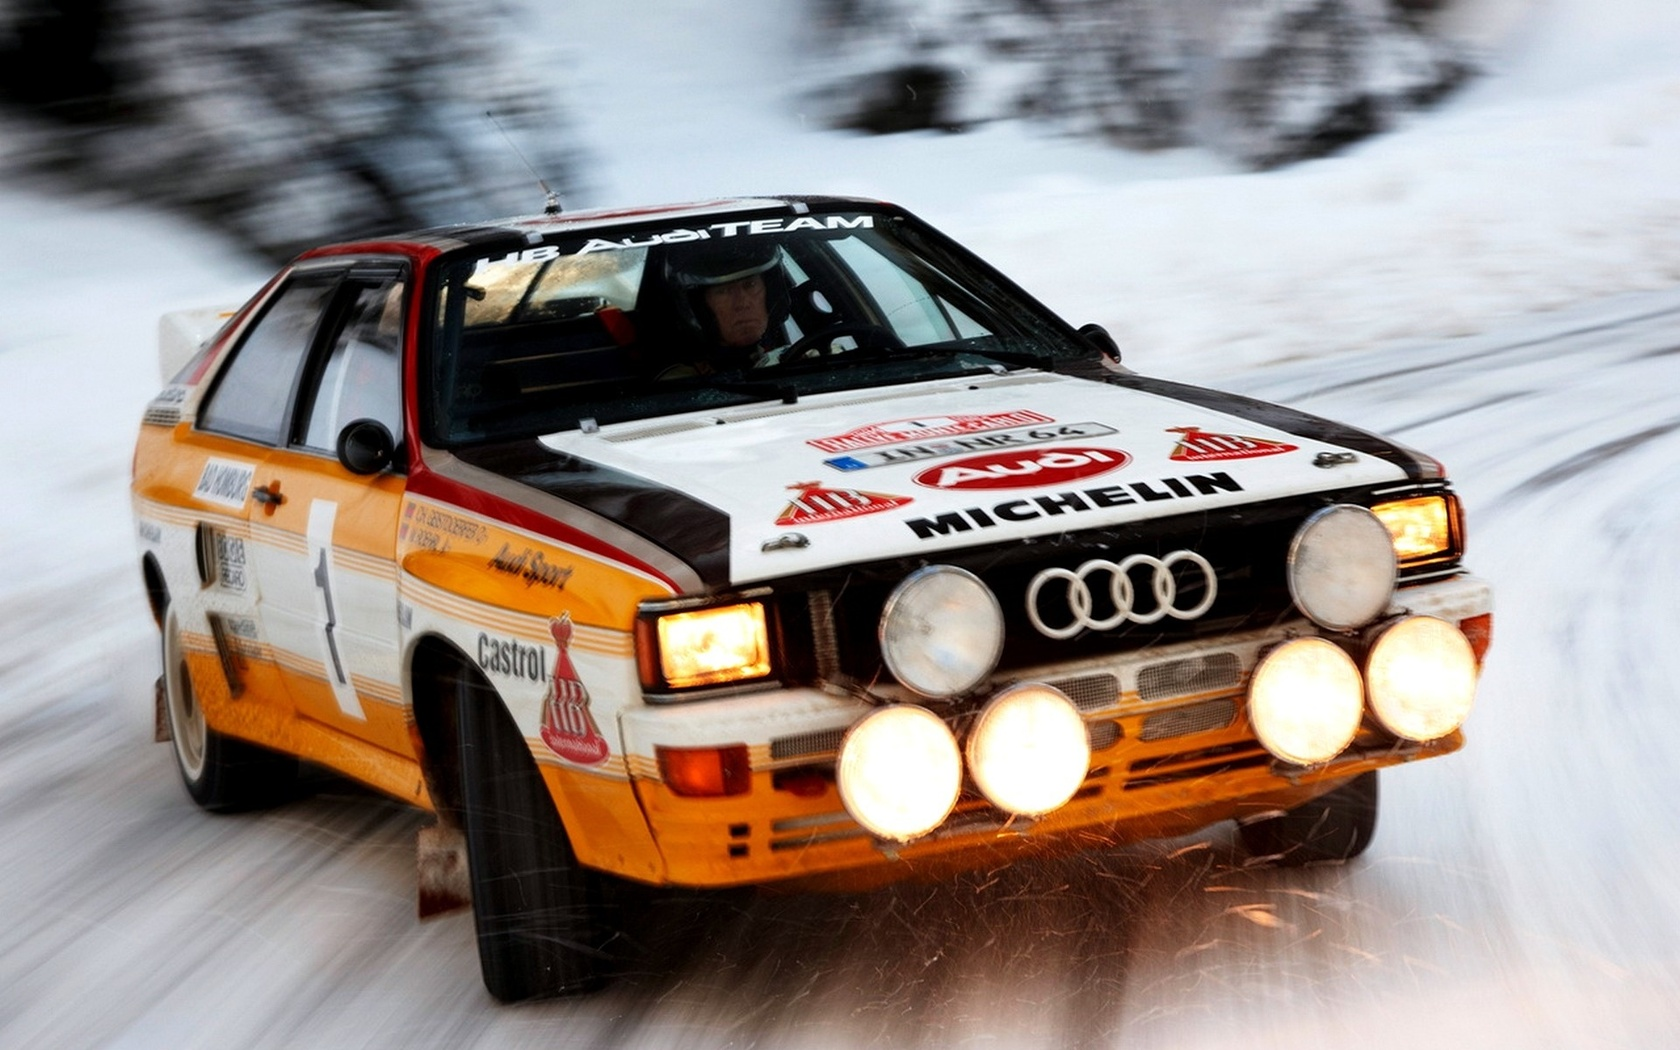 Car, audi, wallpapers, light, quattro, автомобиль, rally, car, speed, snow, group b